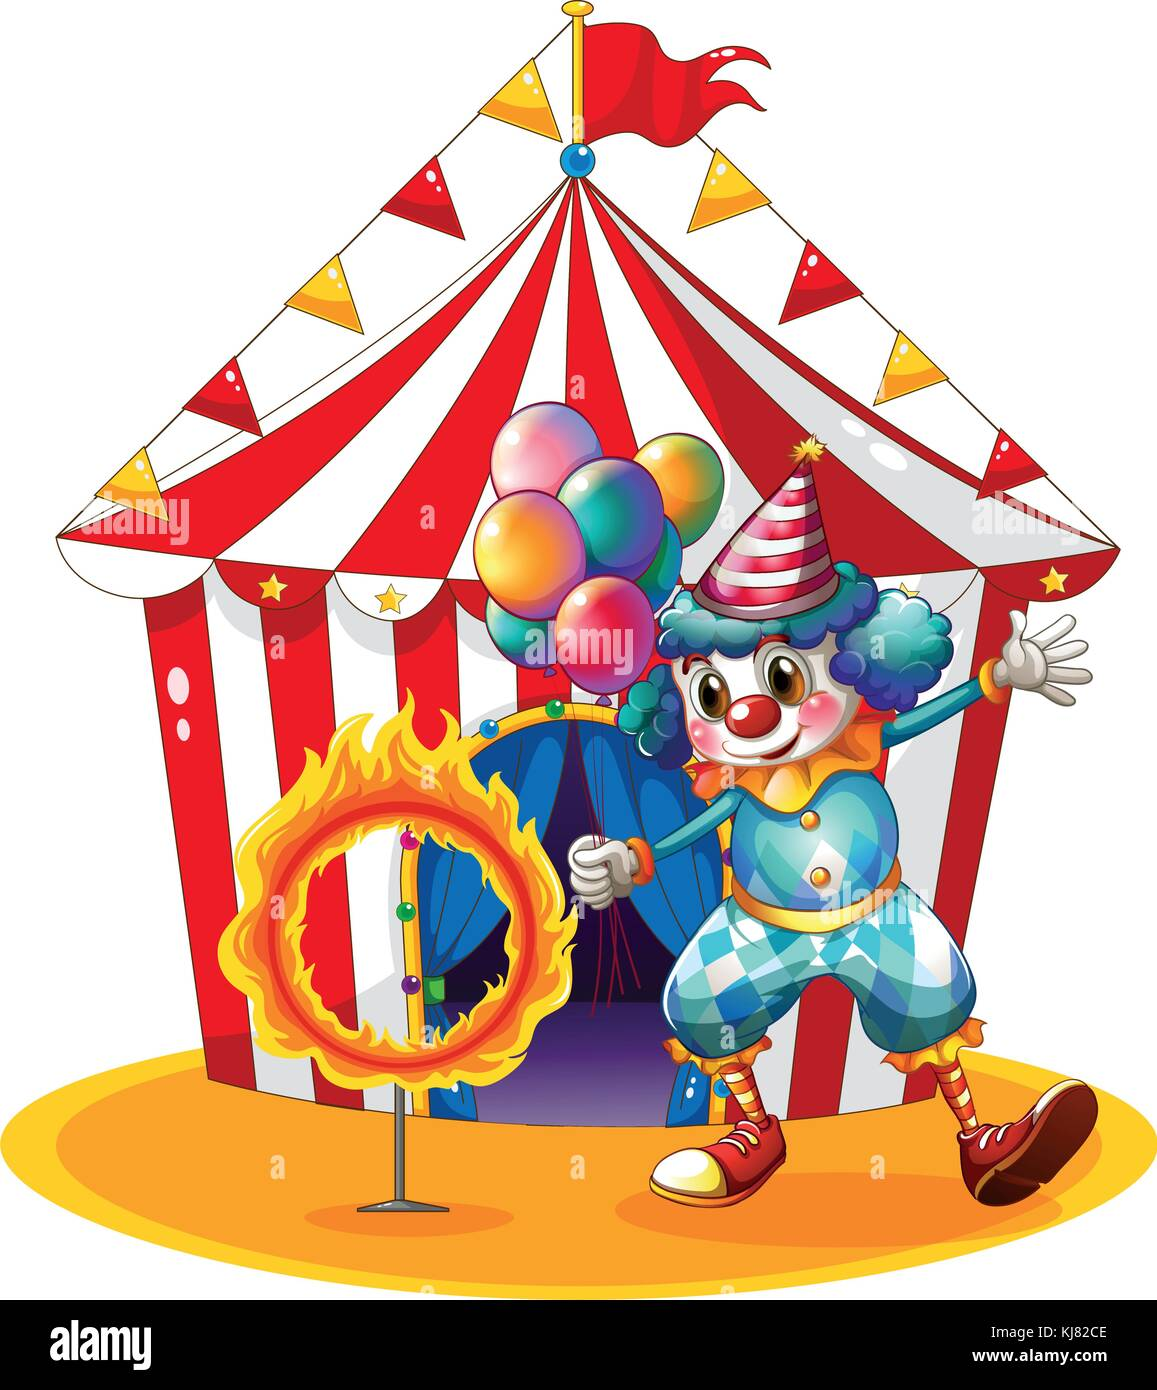 Illustration of a clown holding balloons near the ring of fire on a white background - Stock Image